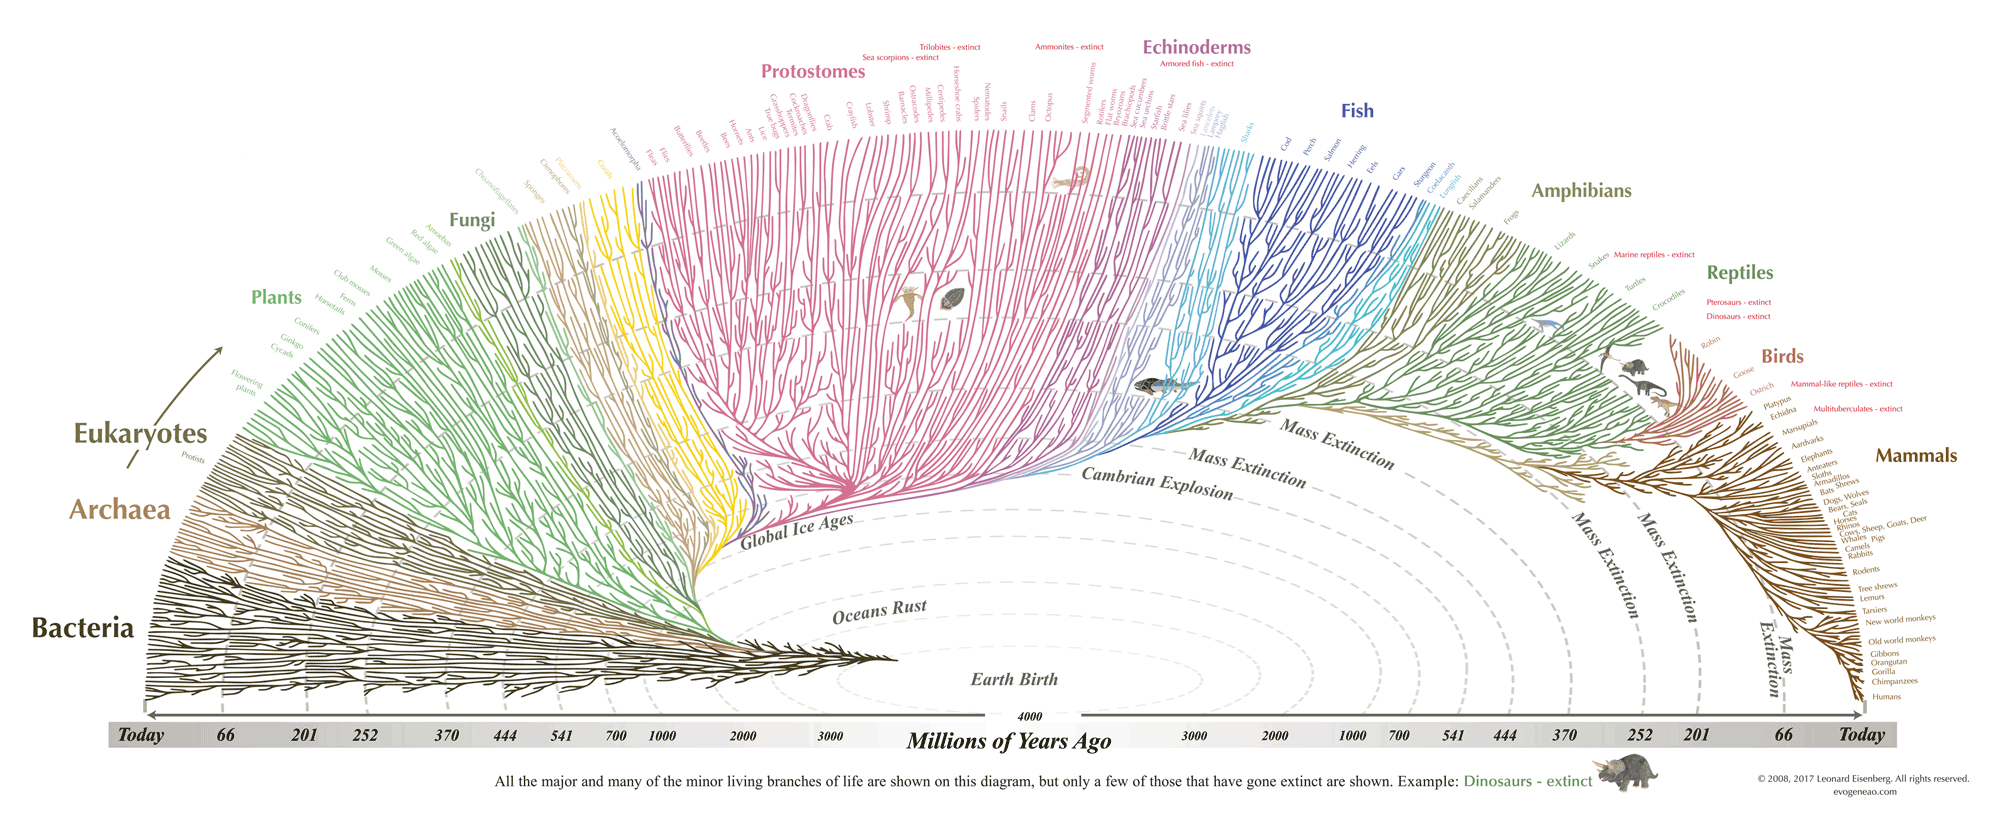 Notice the timescale is not linear. We have to wait 3.5 billion years until the Cambrian Explosion creates the first backboned animals and another 200 million years for backboned animals to emerge on land. From [evogeneao](https://www.evogeneao.com/learn/tree-of-life)